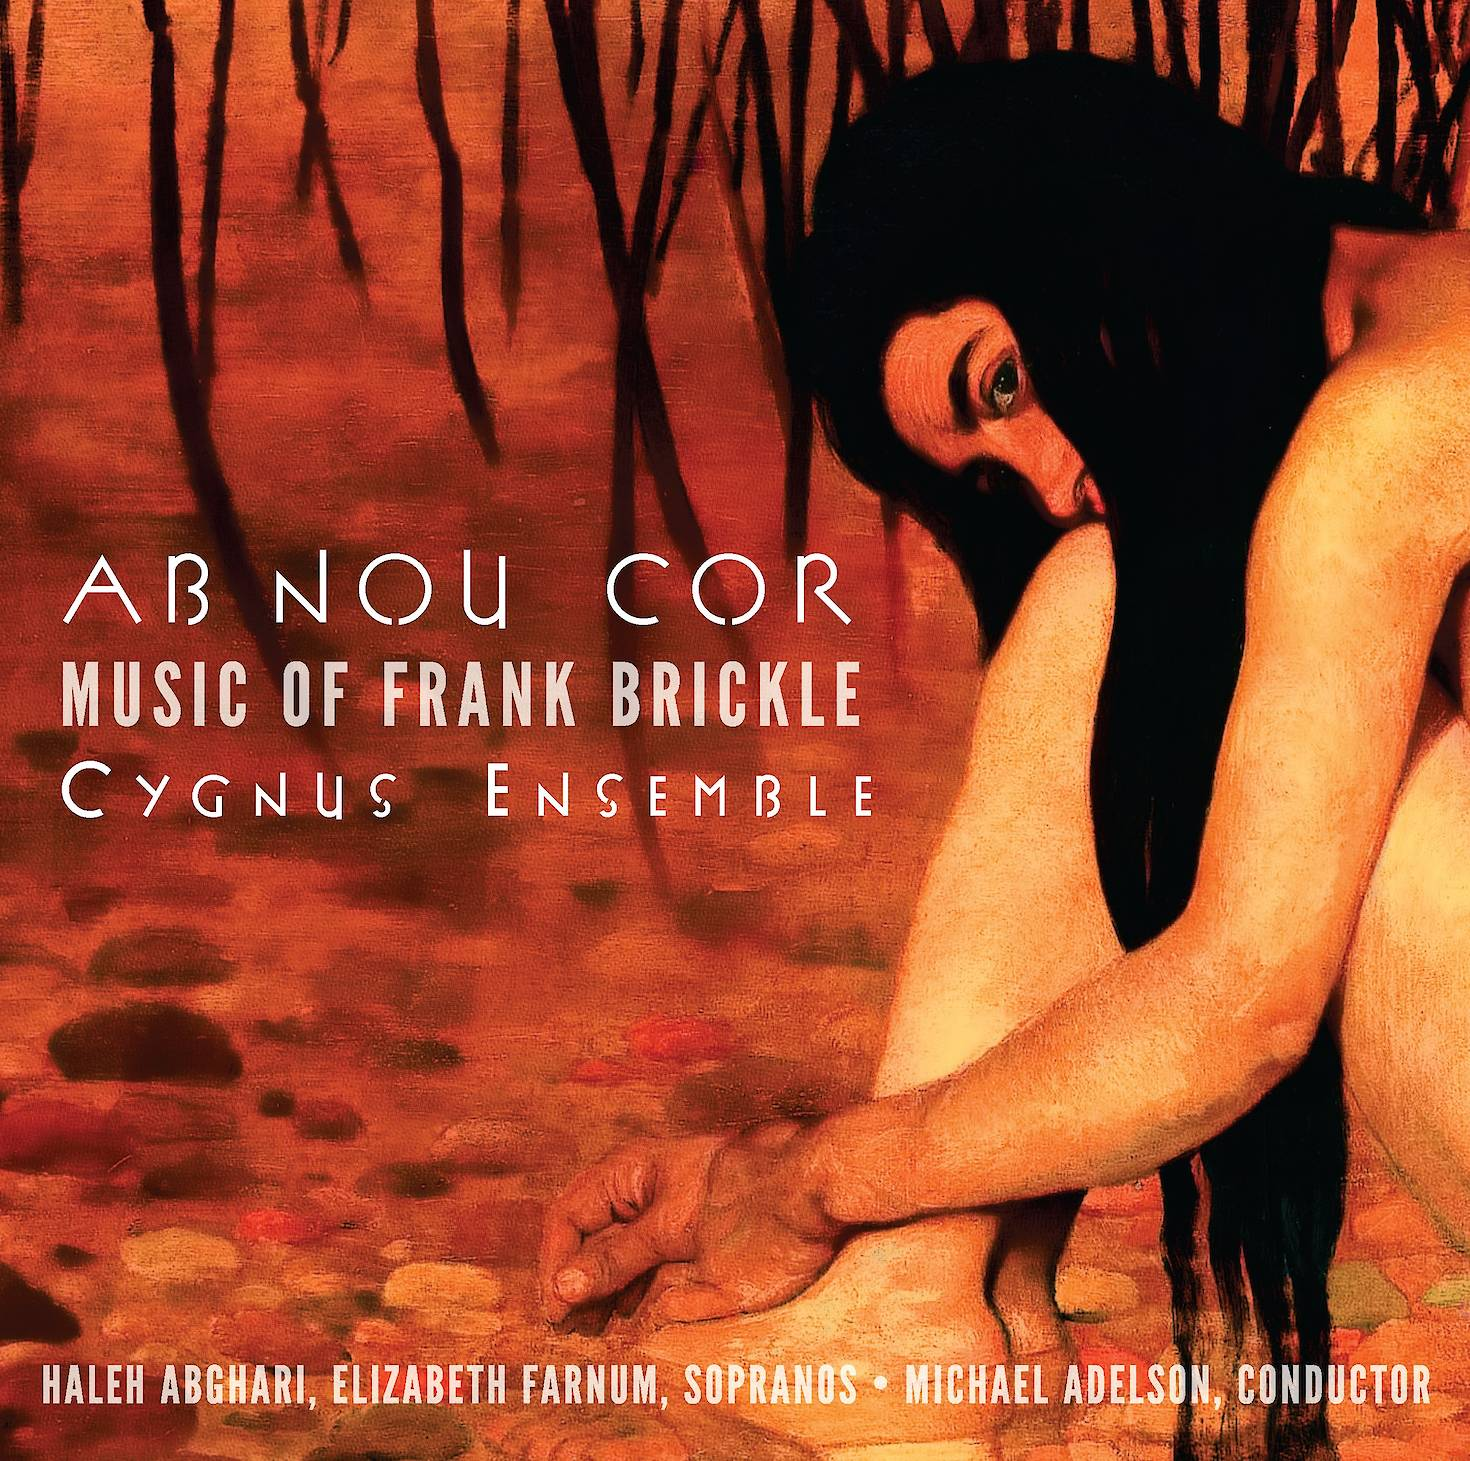 Ab nou cor: Music of Frank Brickle cover